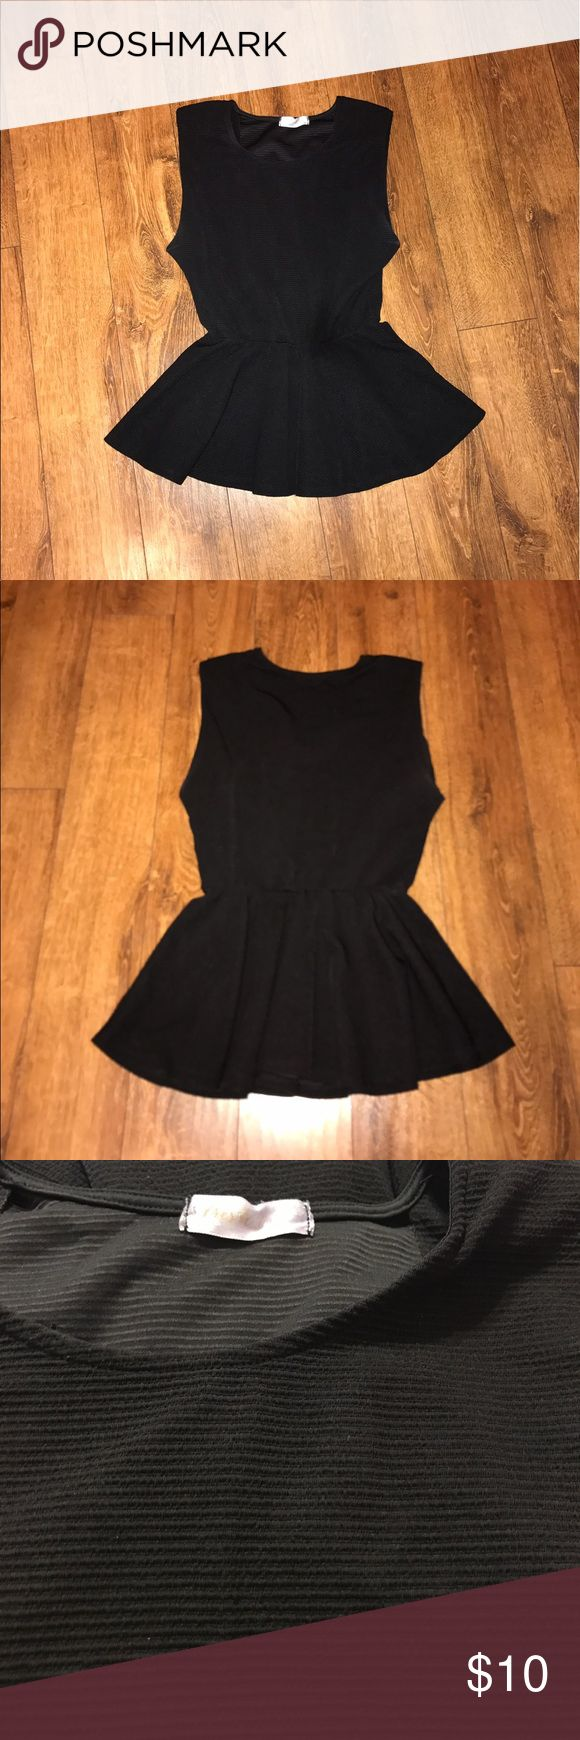 Black peplum top Great condition. Thick banded material. Sleeveless. Elastic waistband. Very flattering. Tops Tank Tops